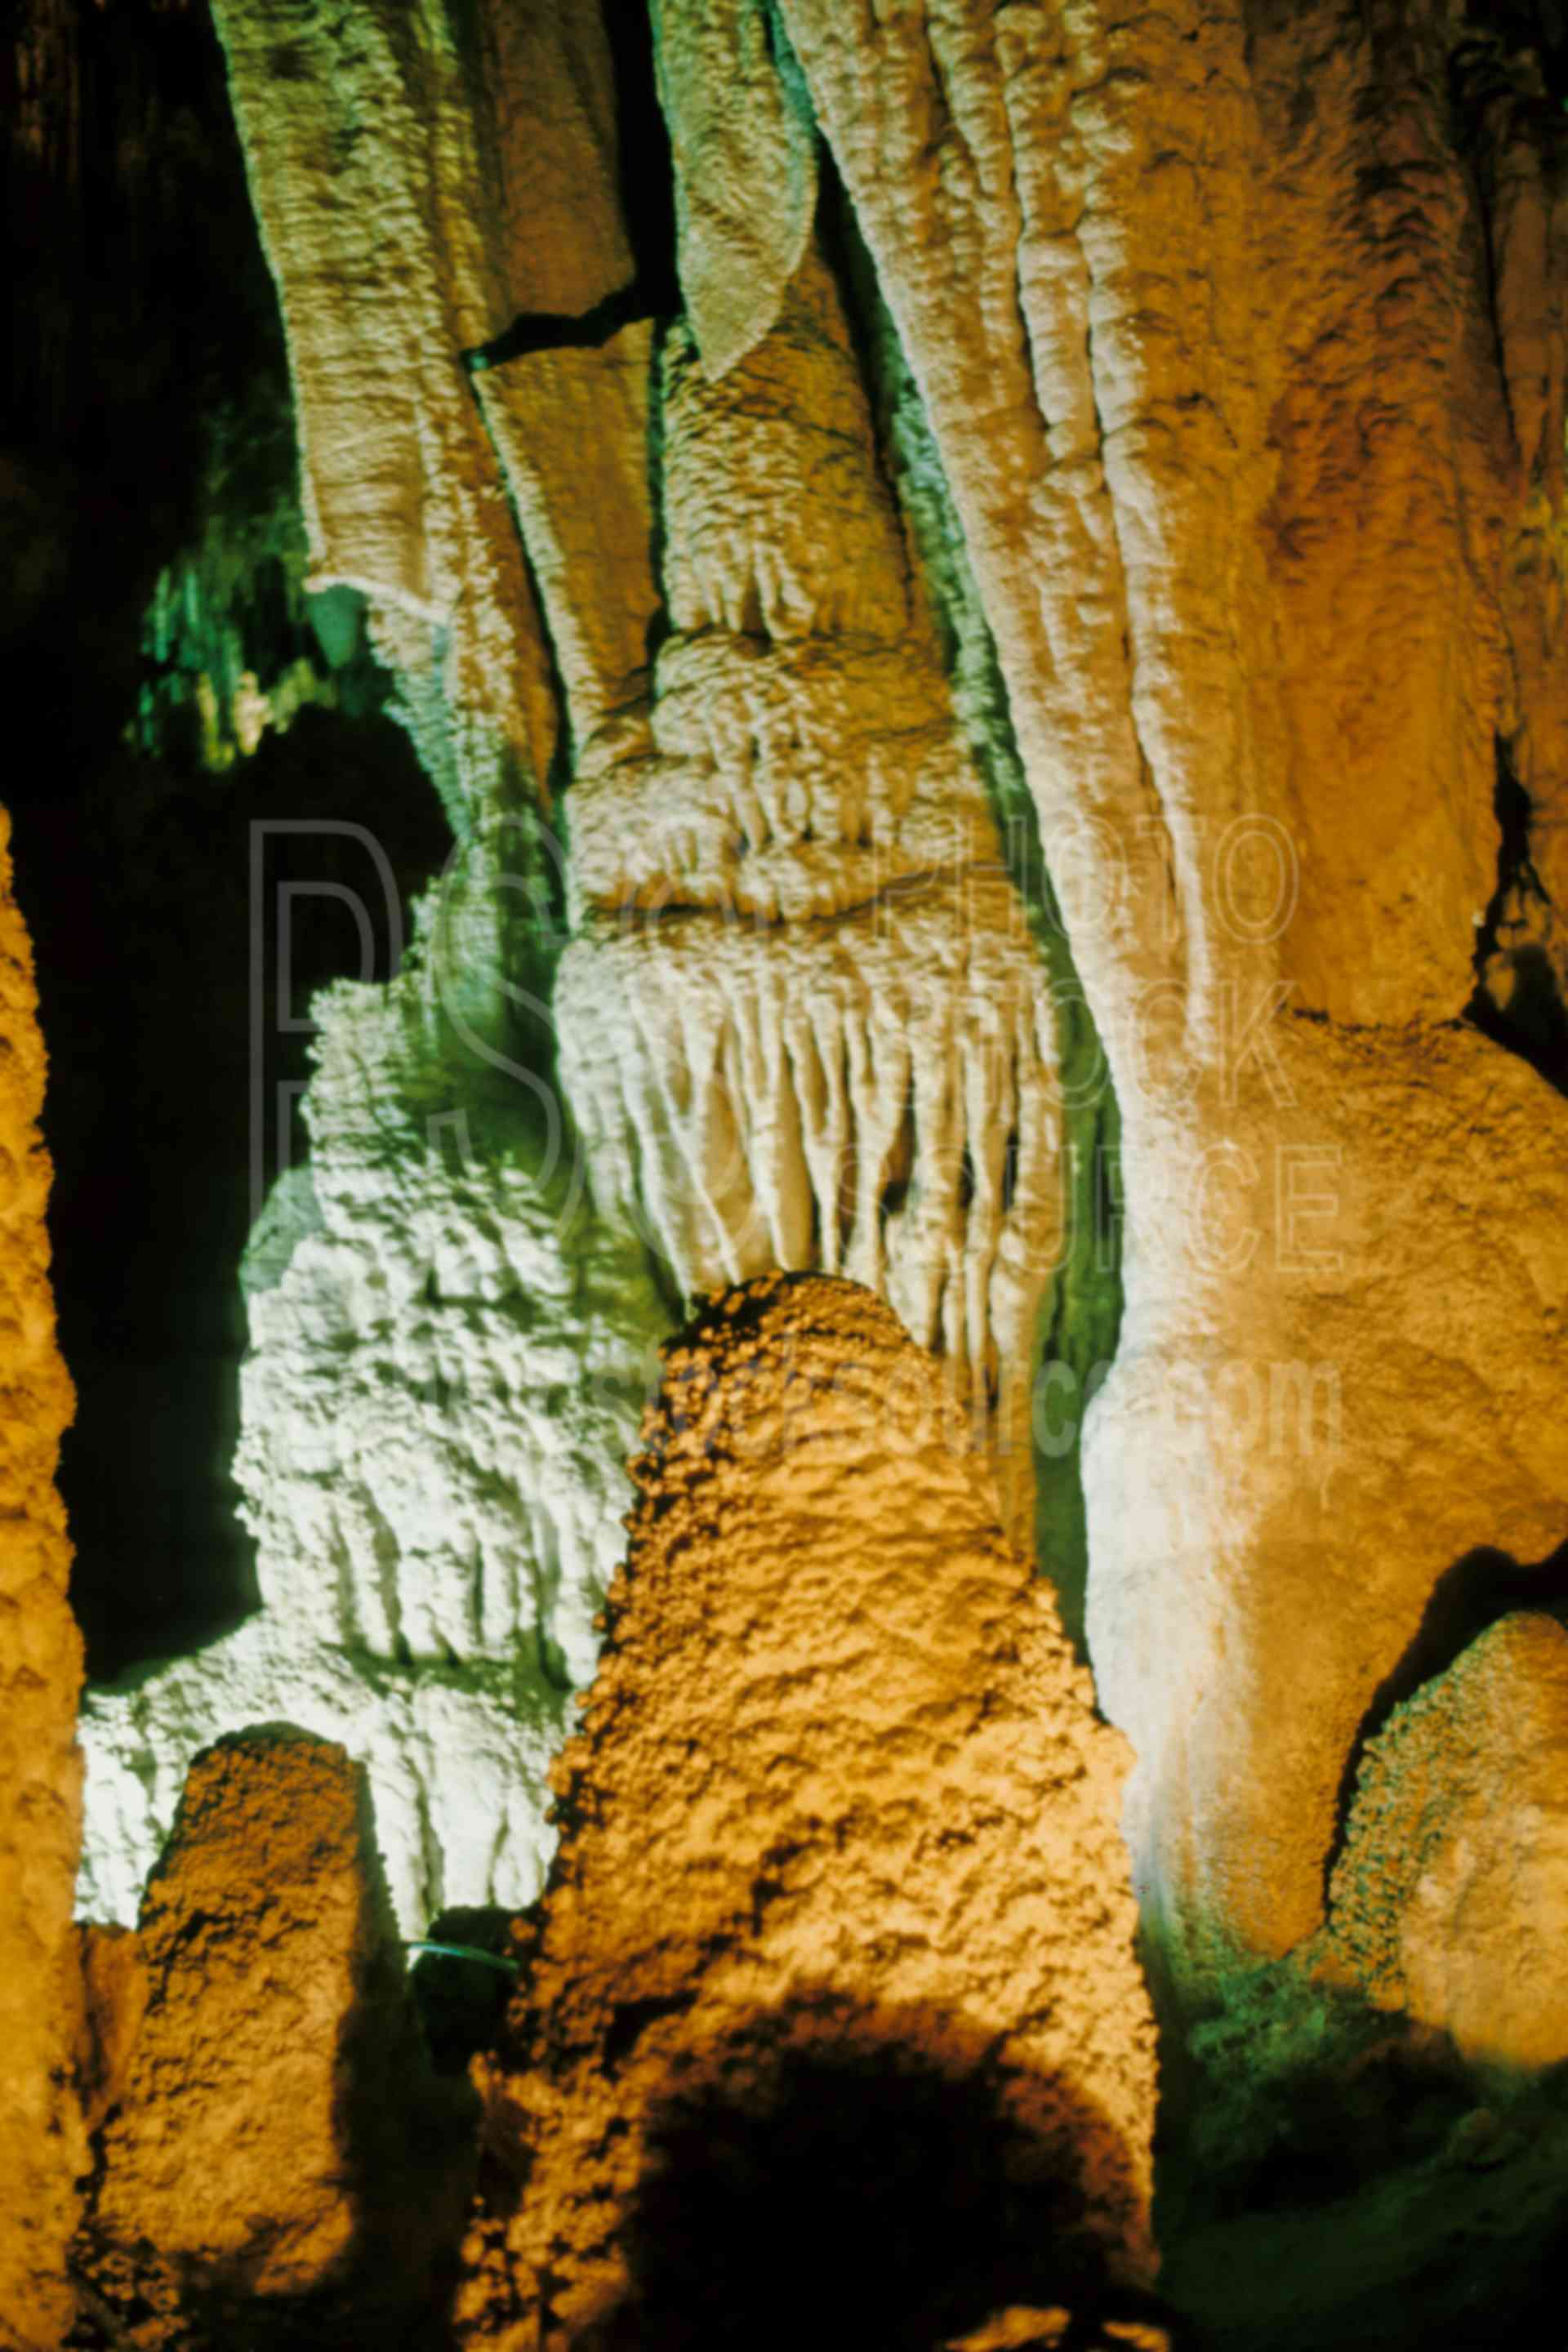 Cavern Formations,carlsbad,cave,usas,national park,nature,national parks